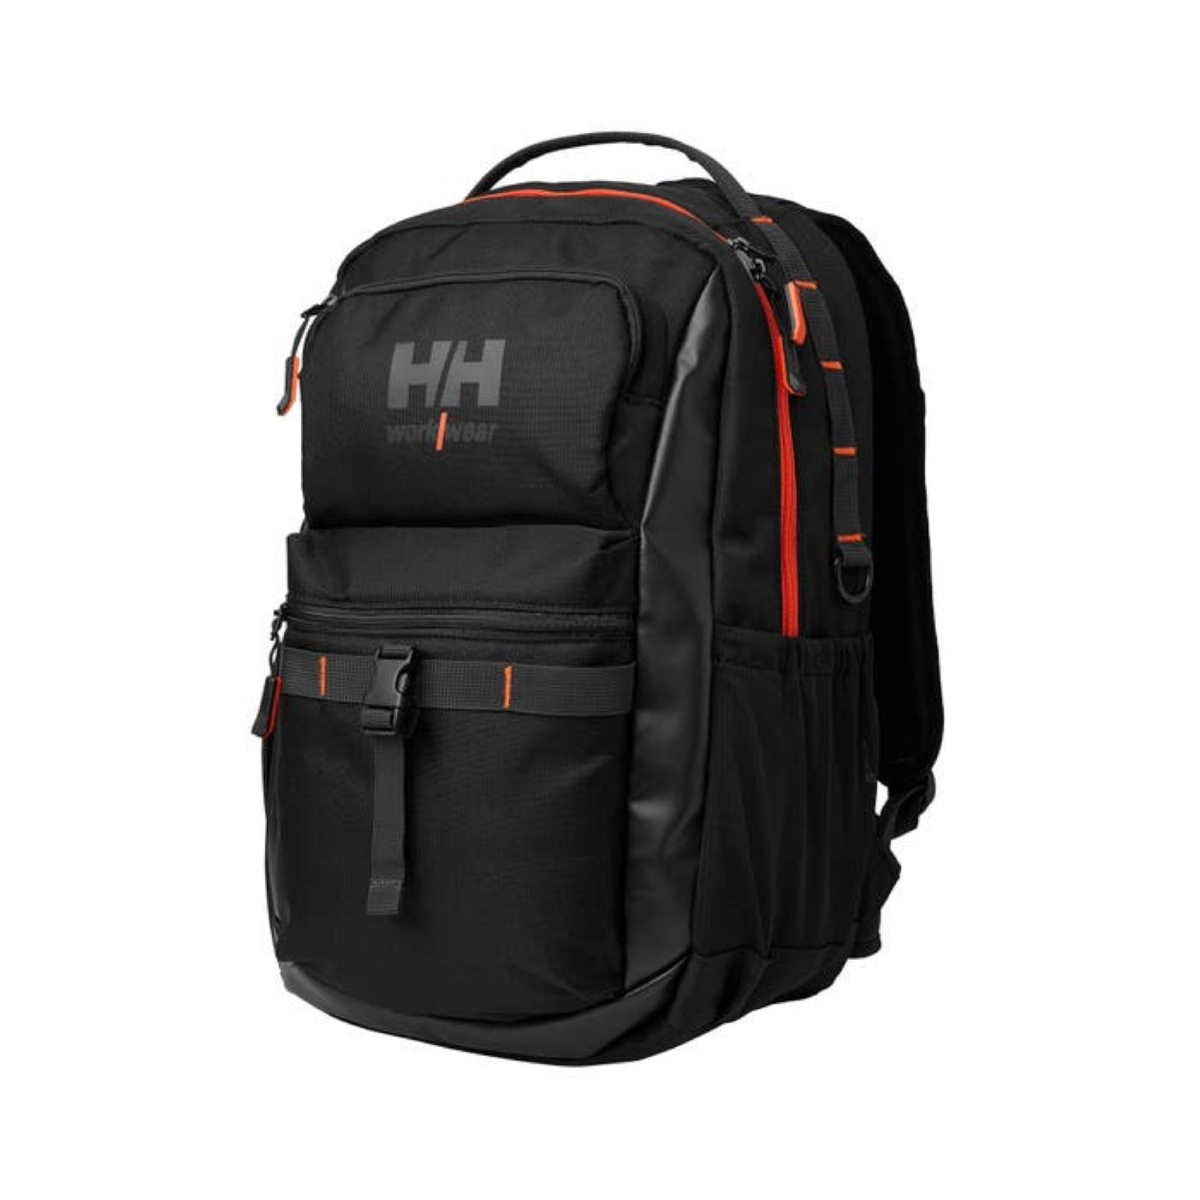 DK7958 Work Day Backpack